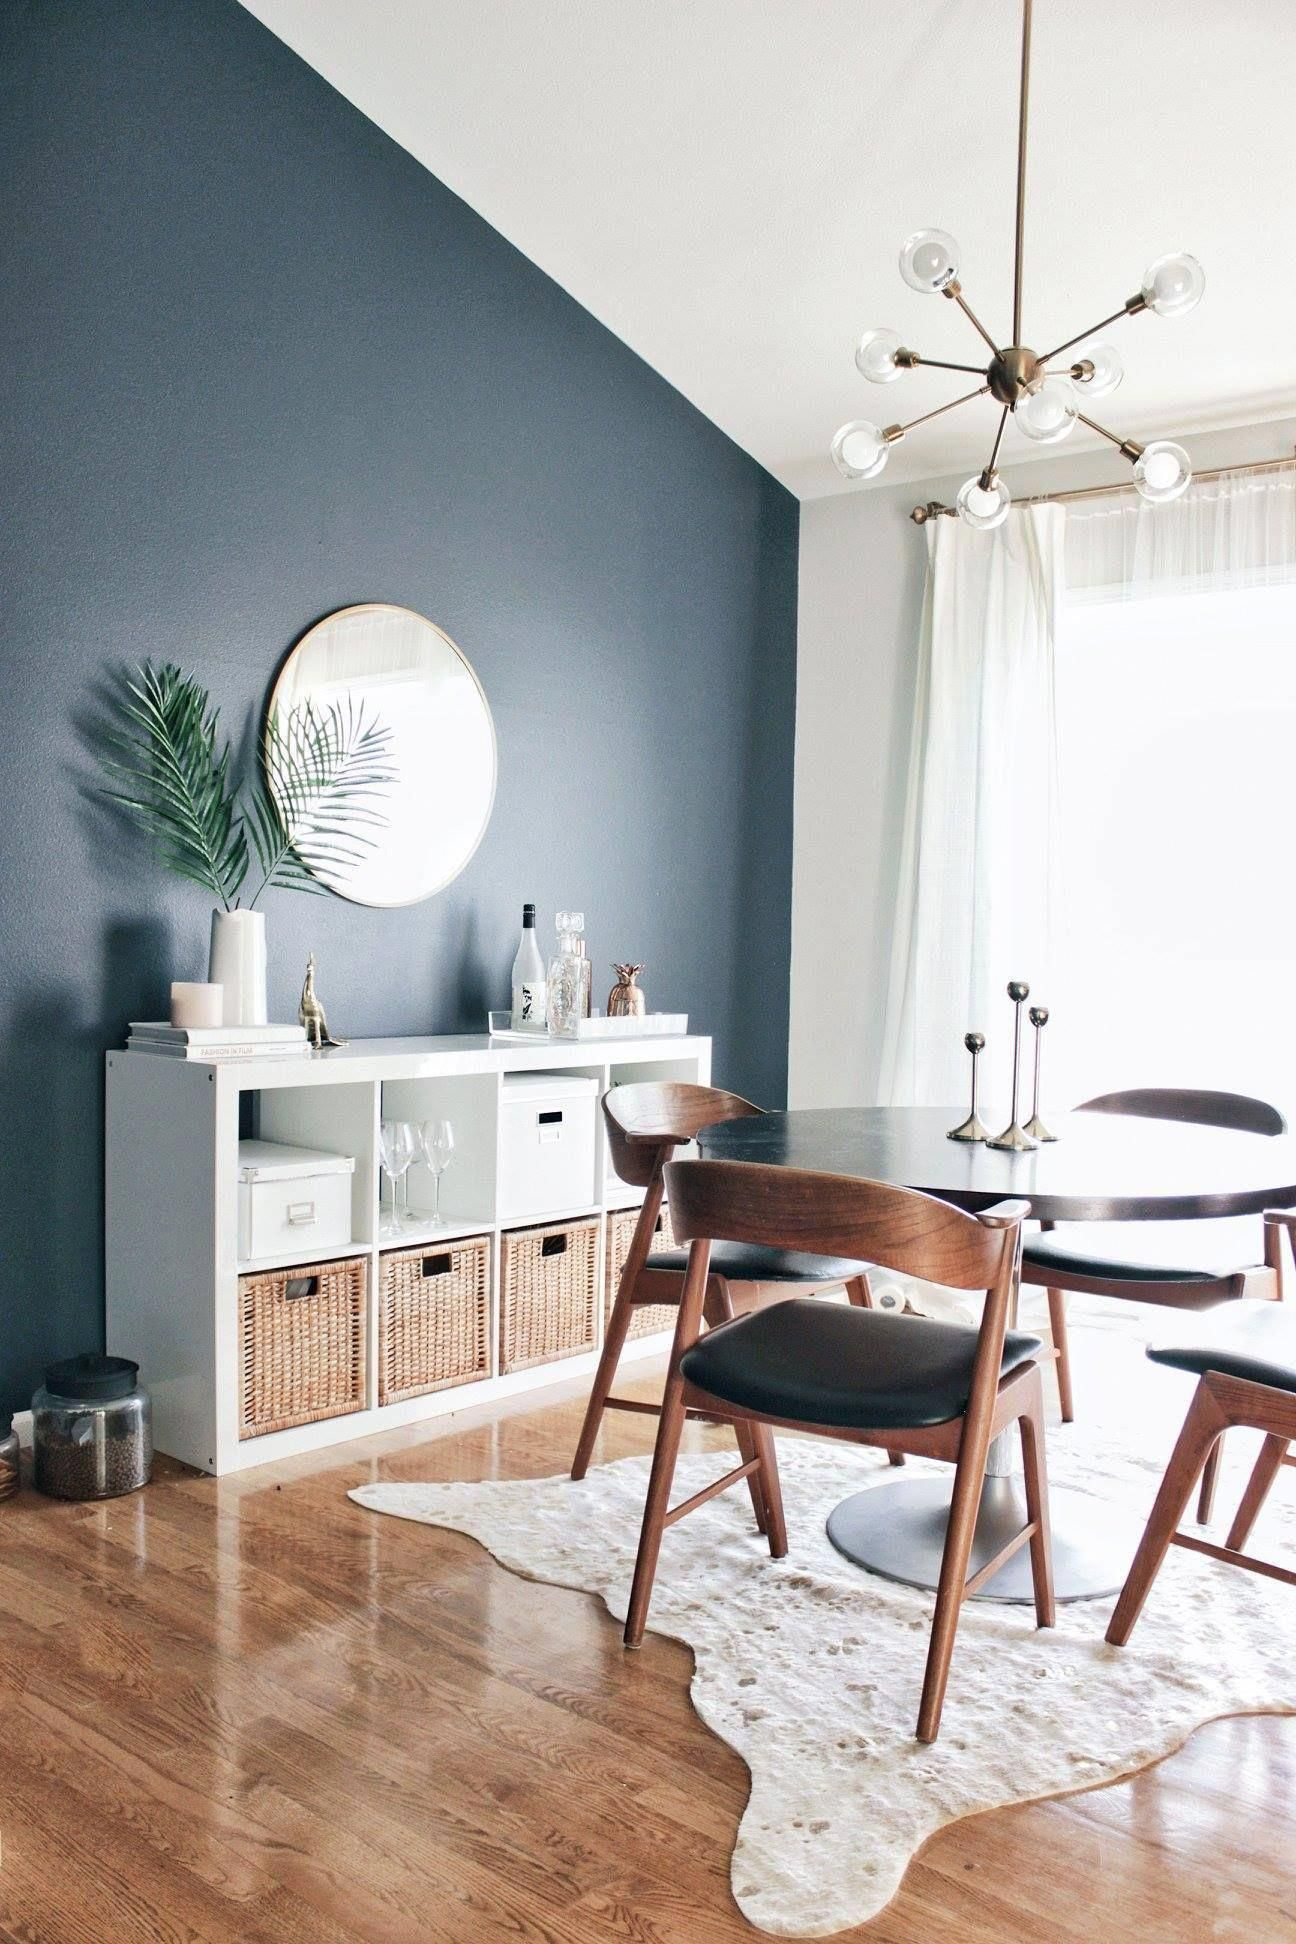 Dining room decorating concepts are so huge that your room